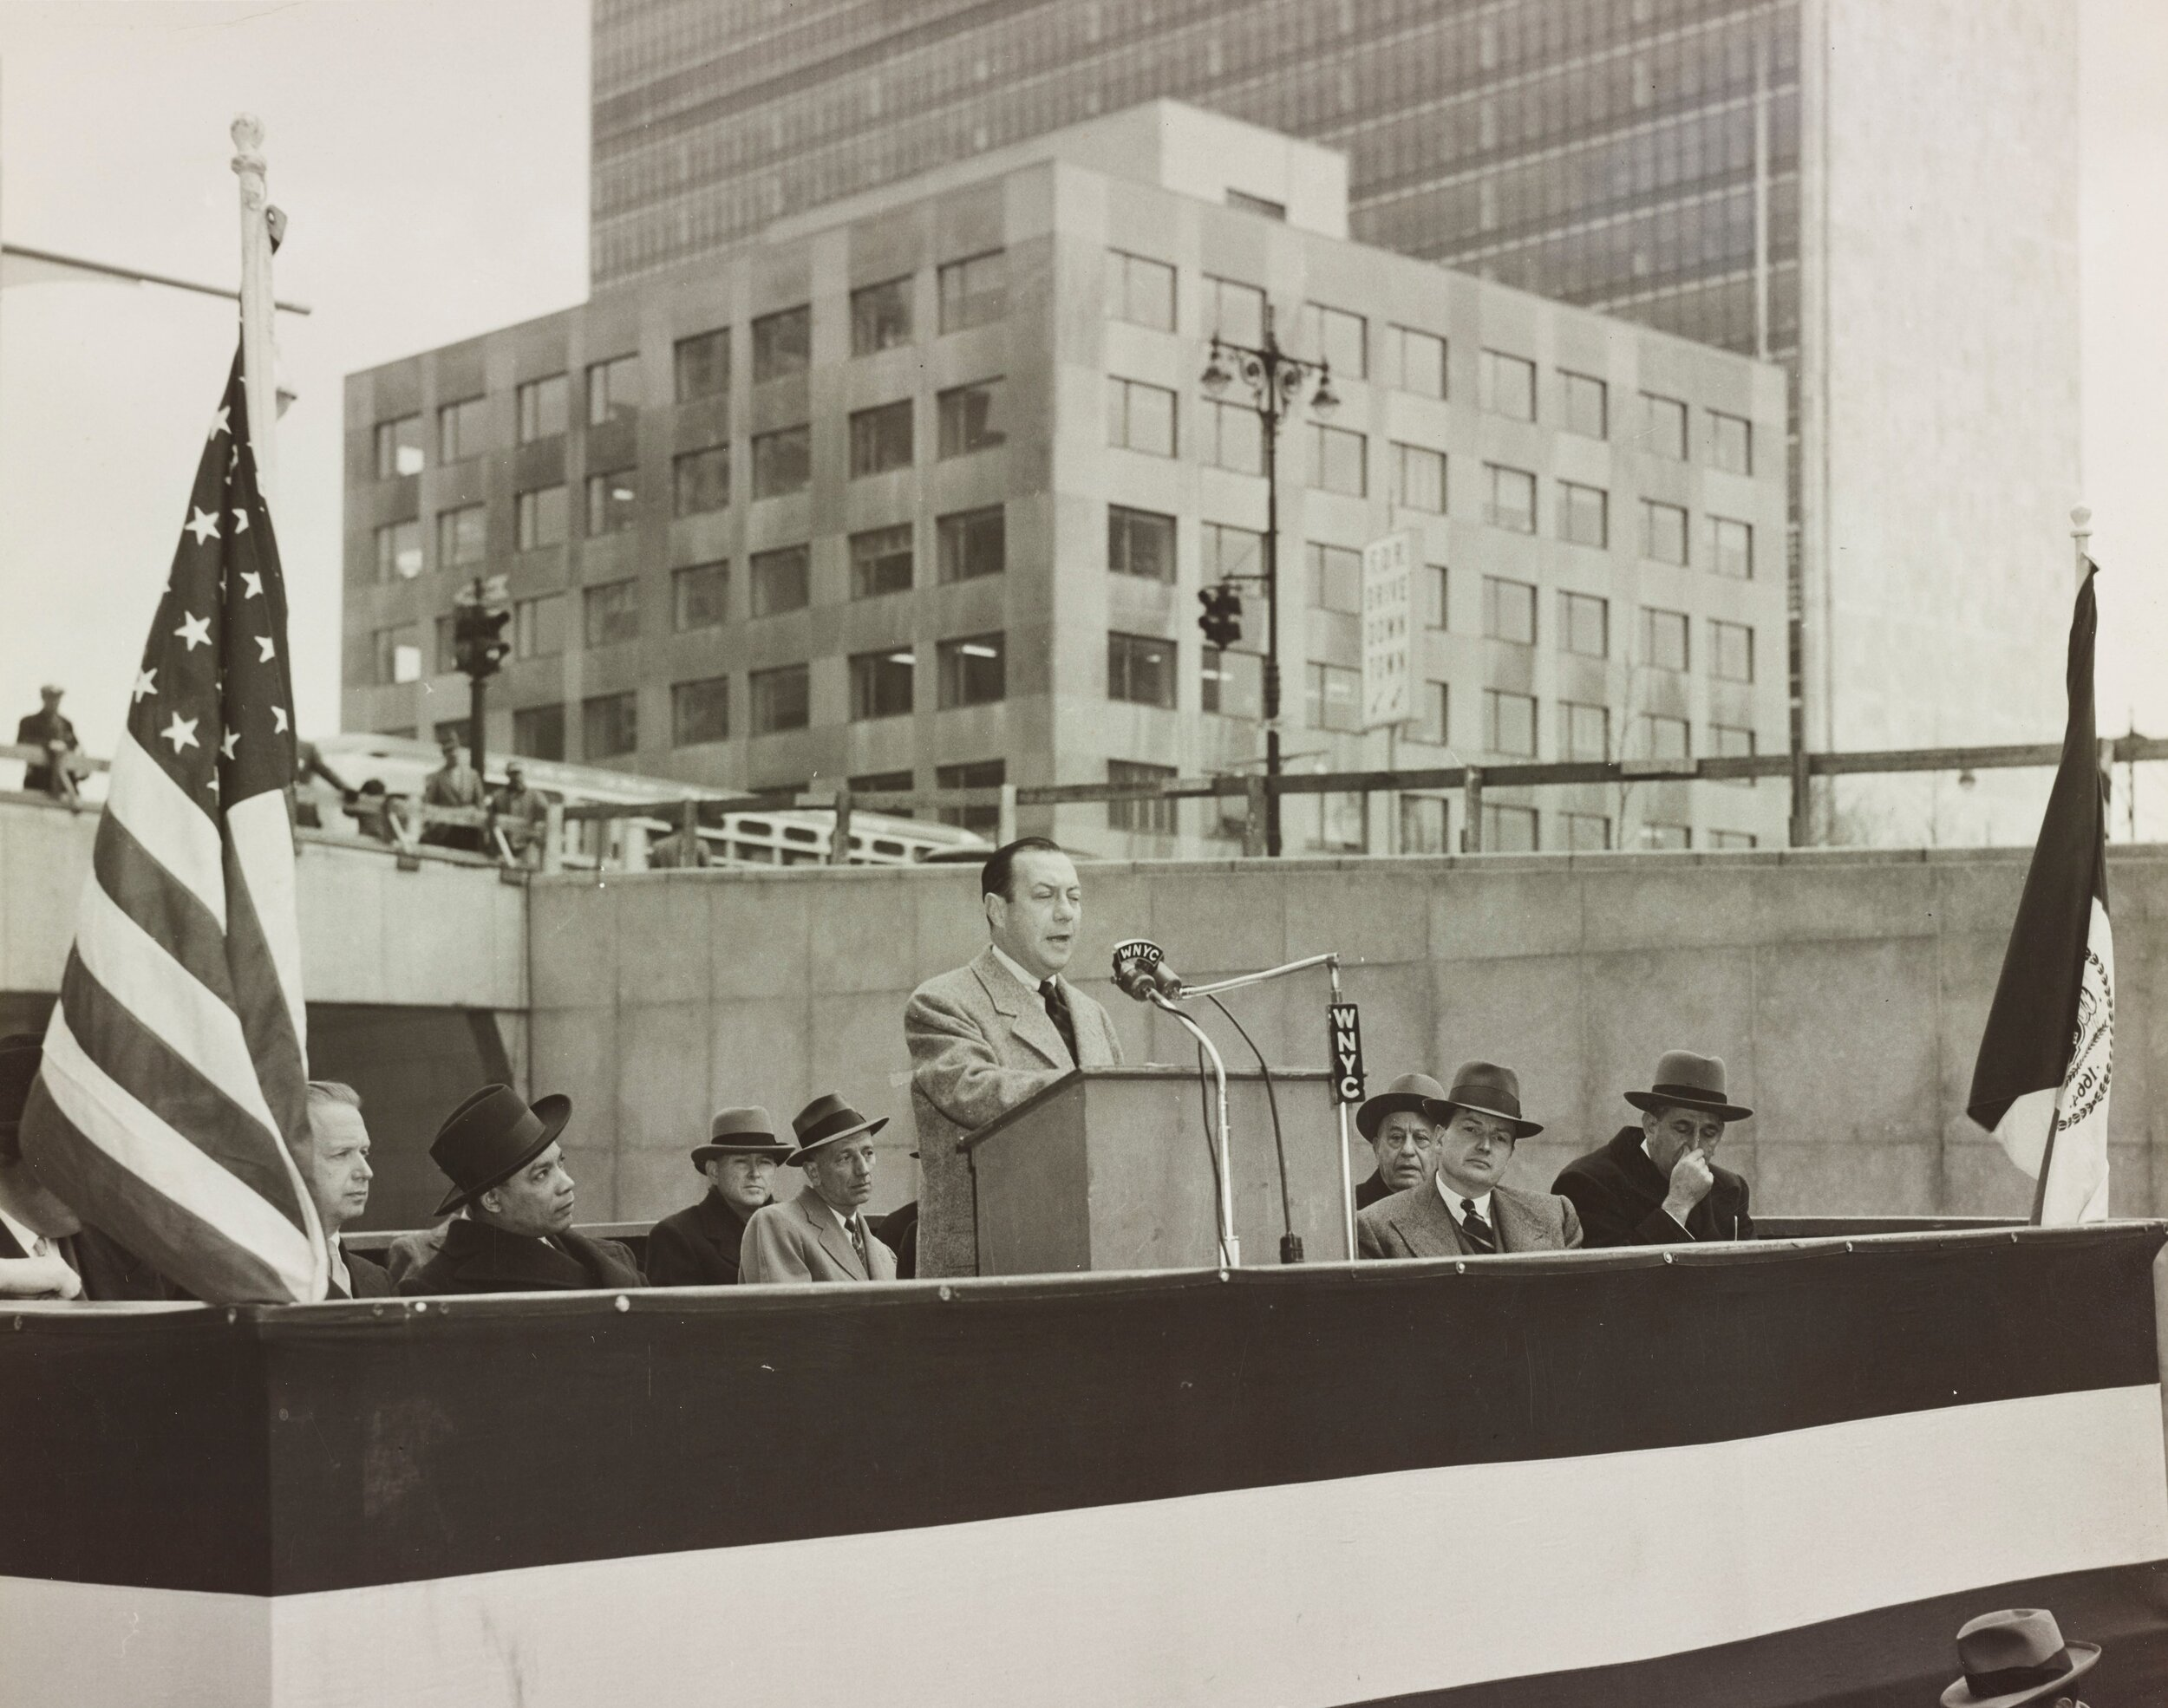 Mayor Robert F. Wagner speaks at the ceremony opening the Brooklyn Battery Tunnel, May 25, 1950. NYC Municipal Archives.